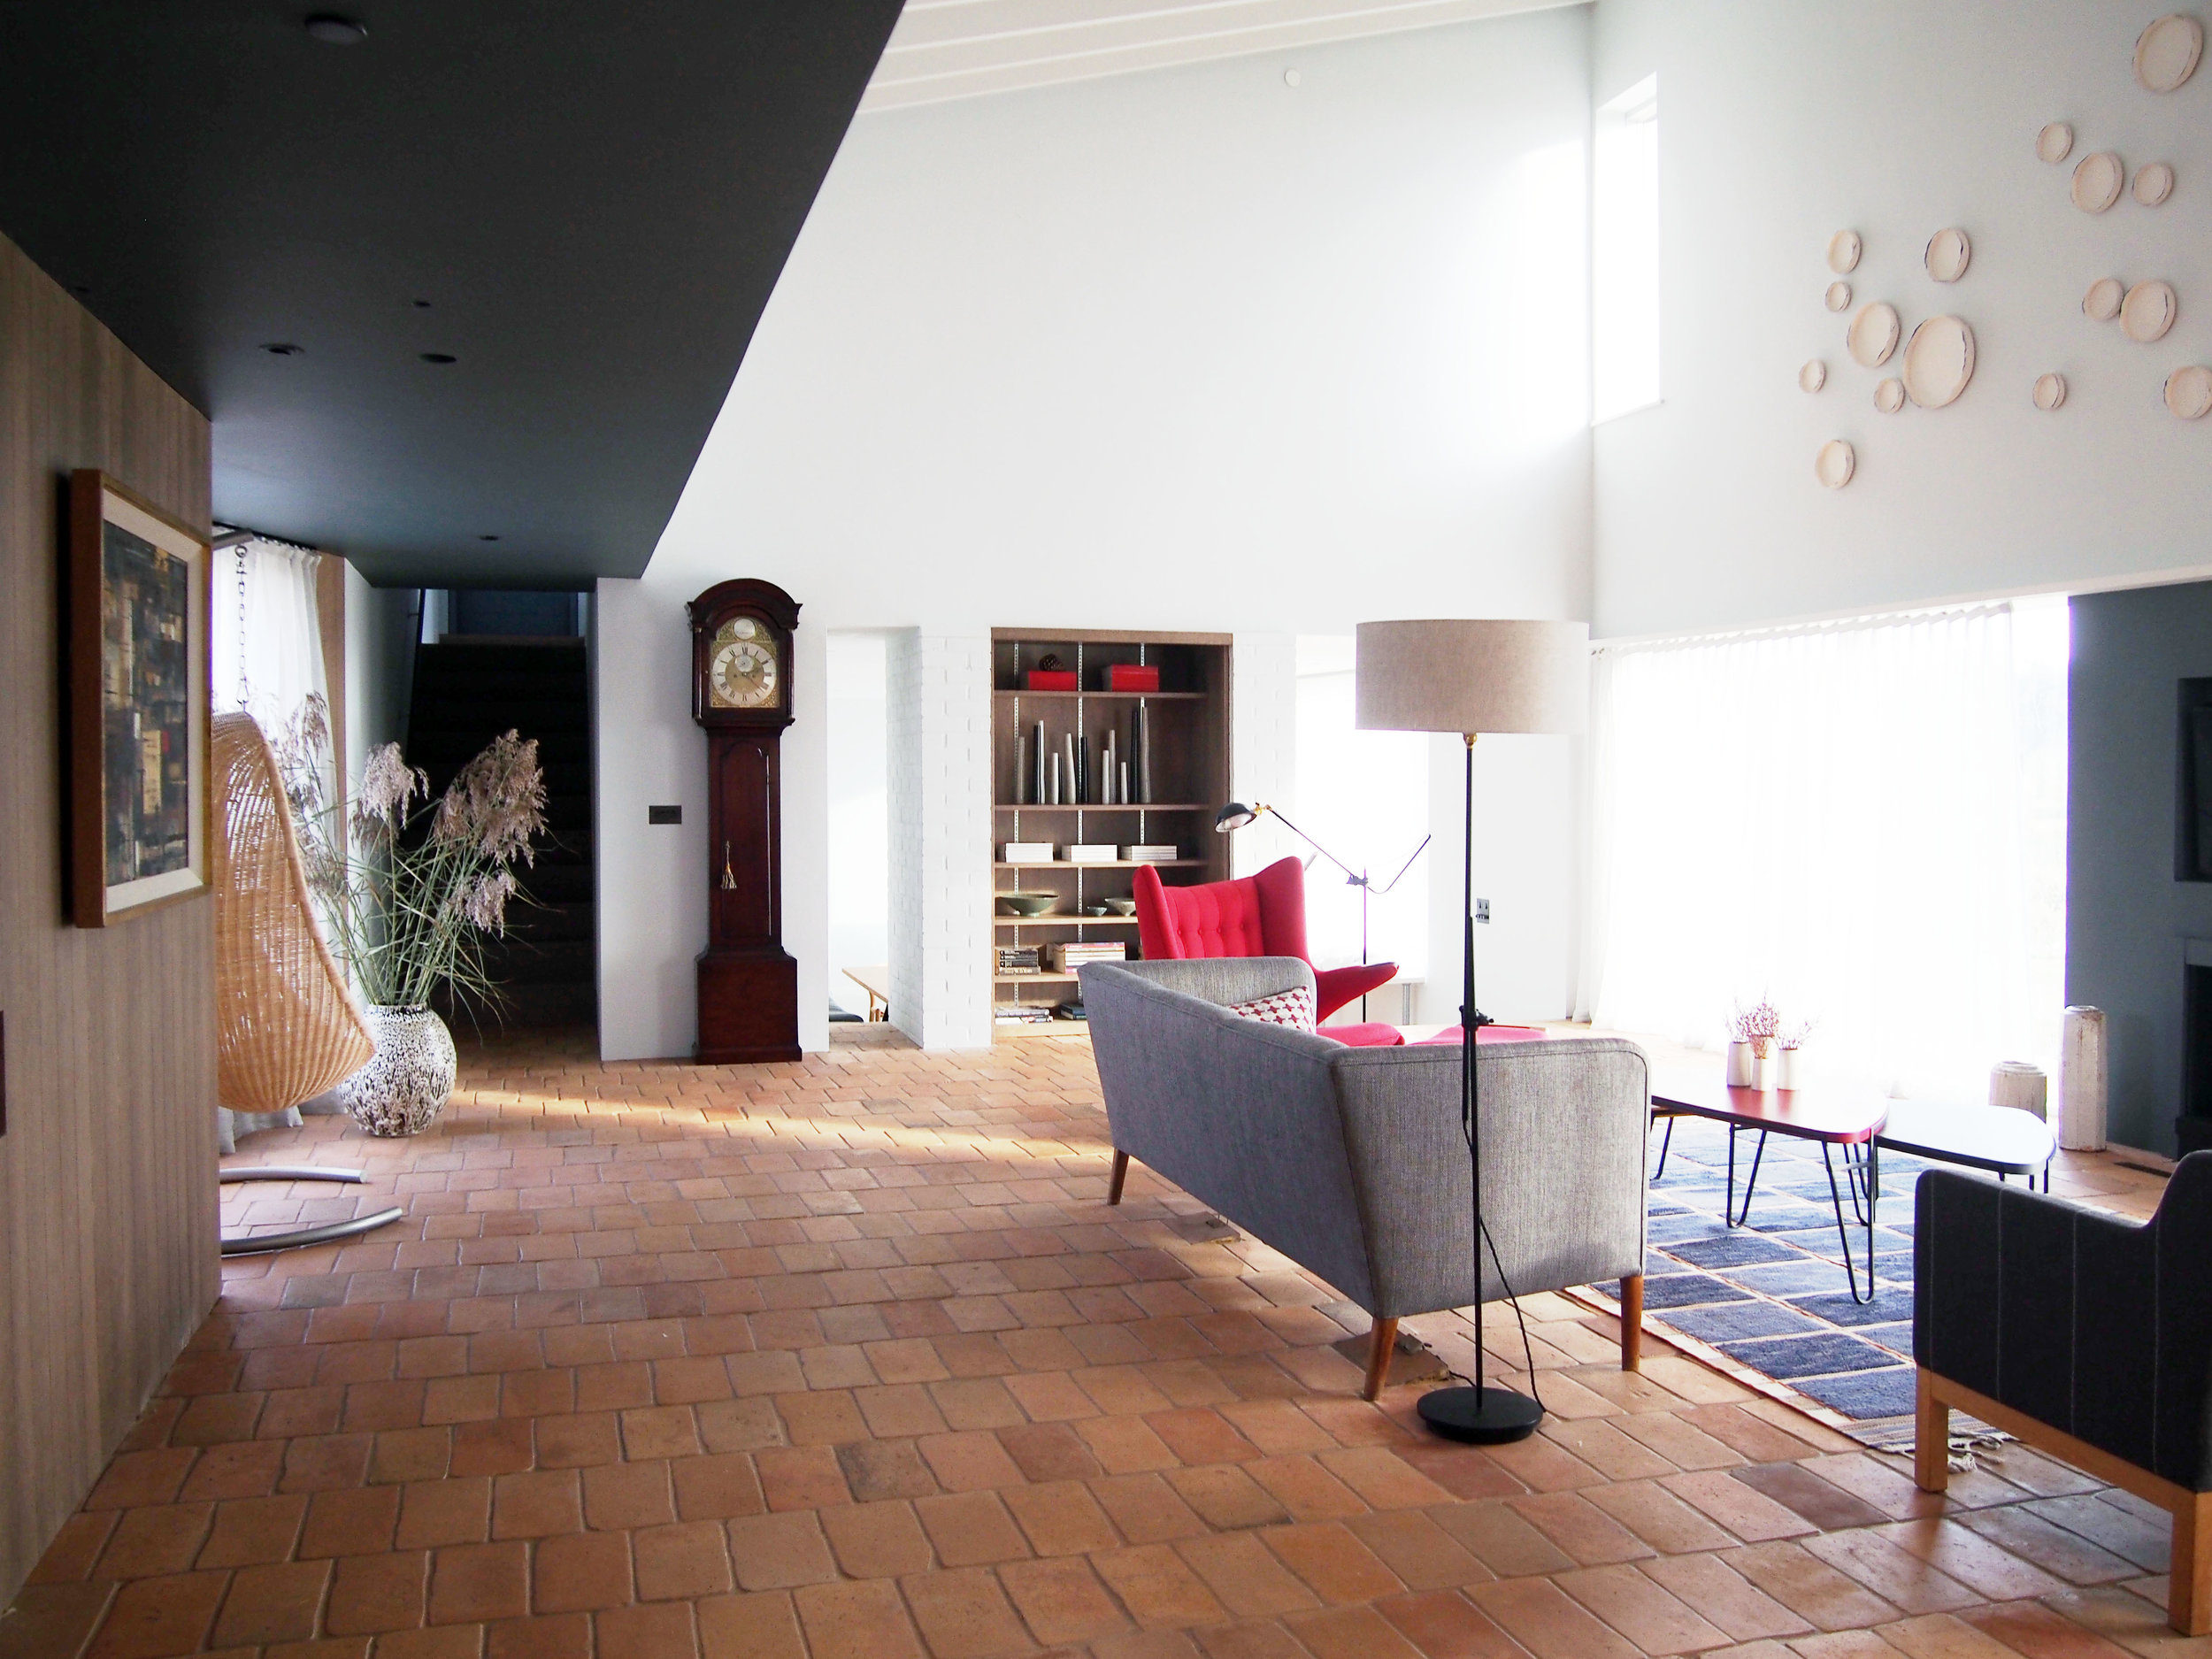 View of the sitting room from entrance area, showing darkened ceiling to enhance the planes of the space, hanging chair, and ceramics by Valeria Nascimento above the fire on the east wall